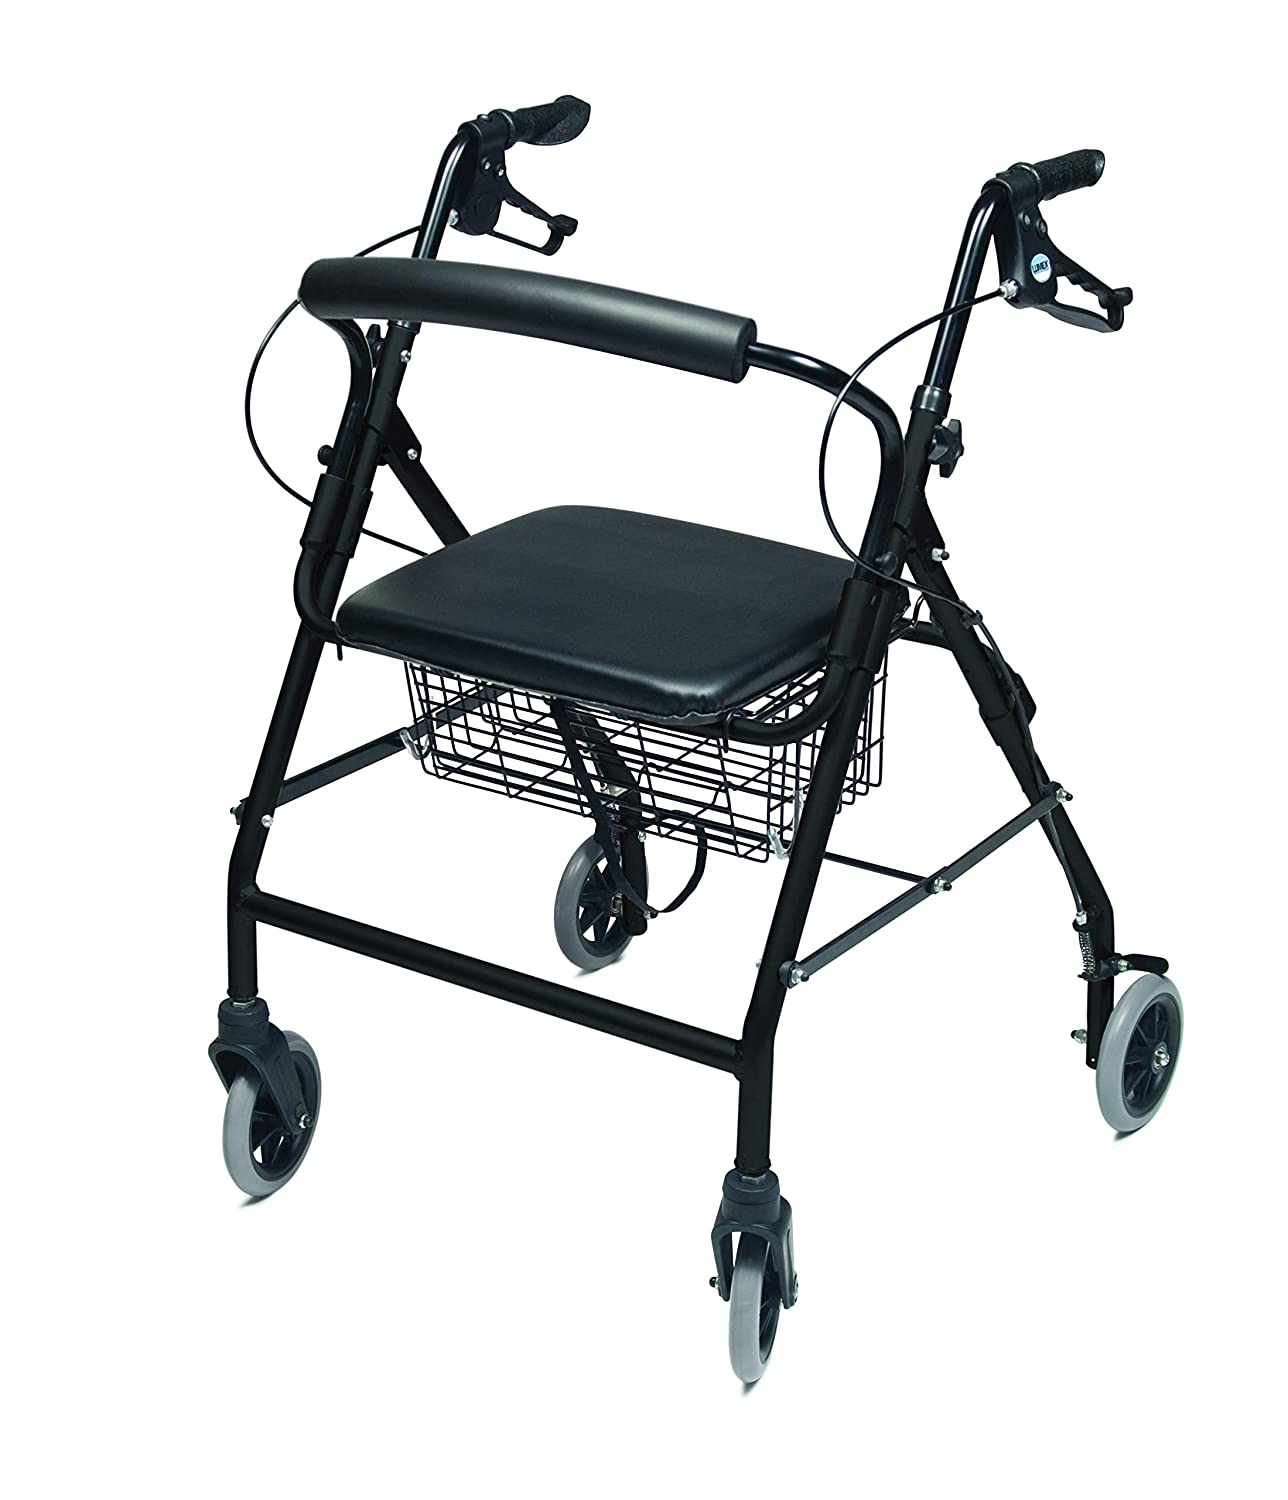 Lumex Walkabout Wide Rollator with Seat - Wide 15.5